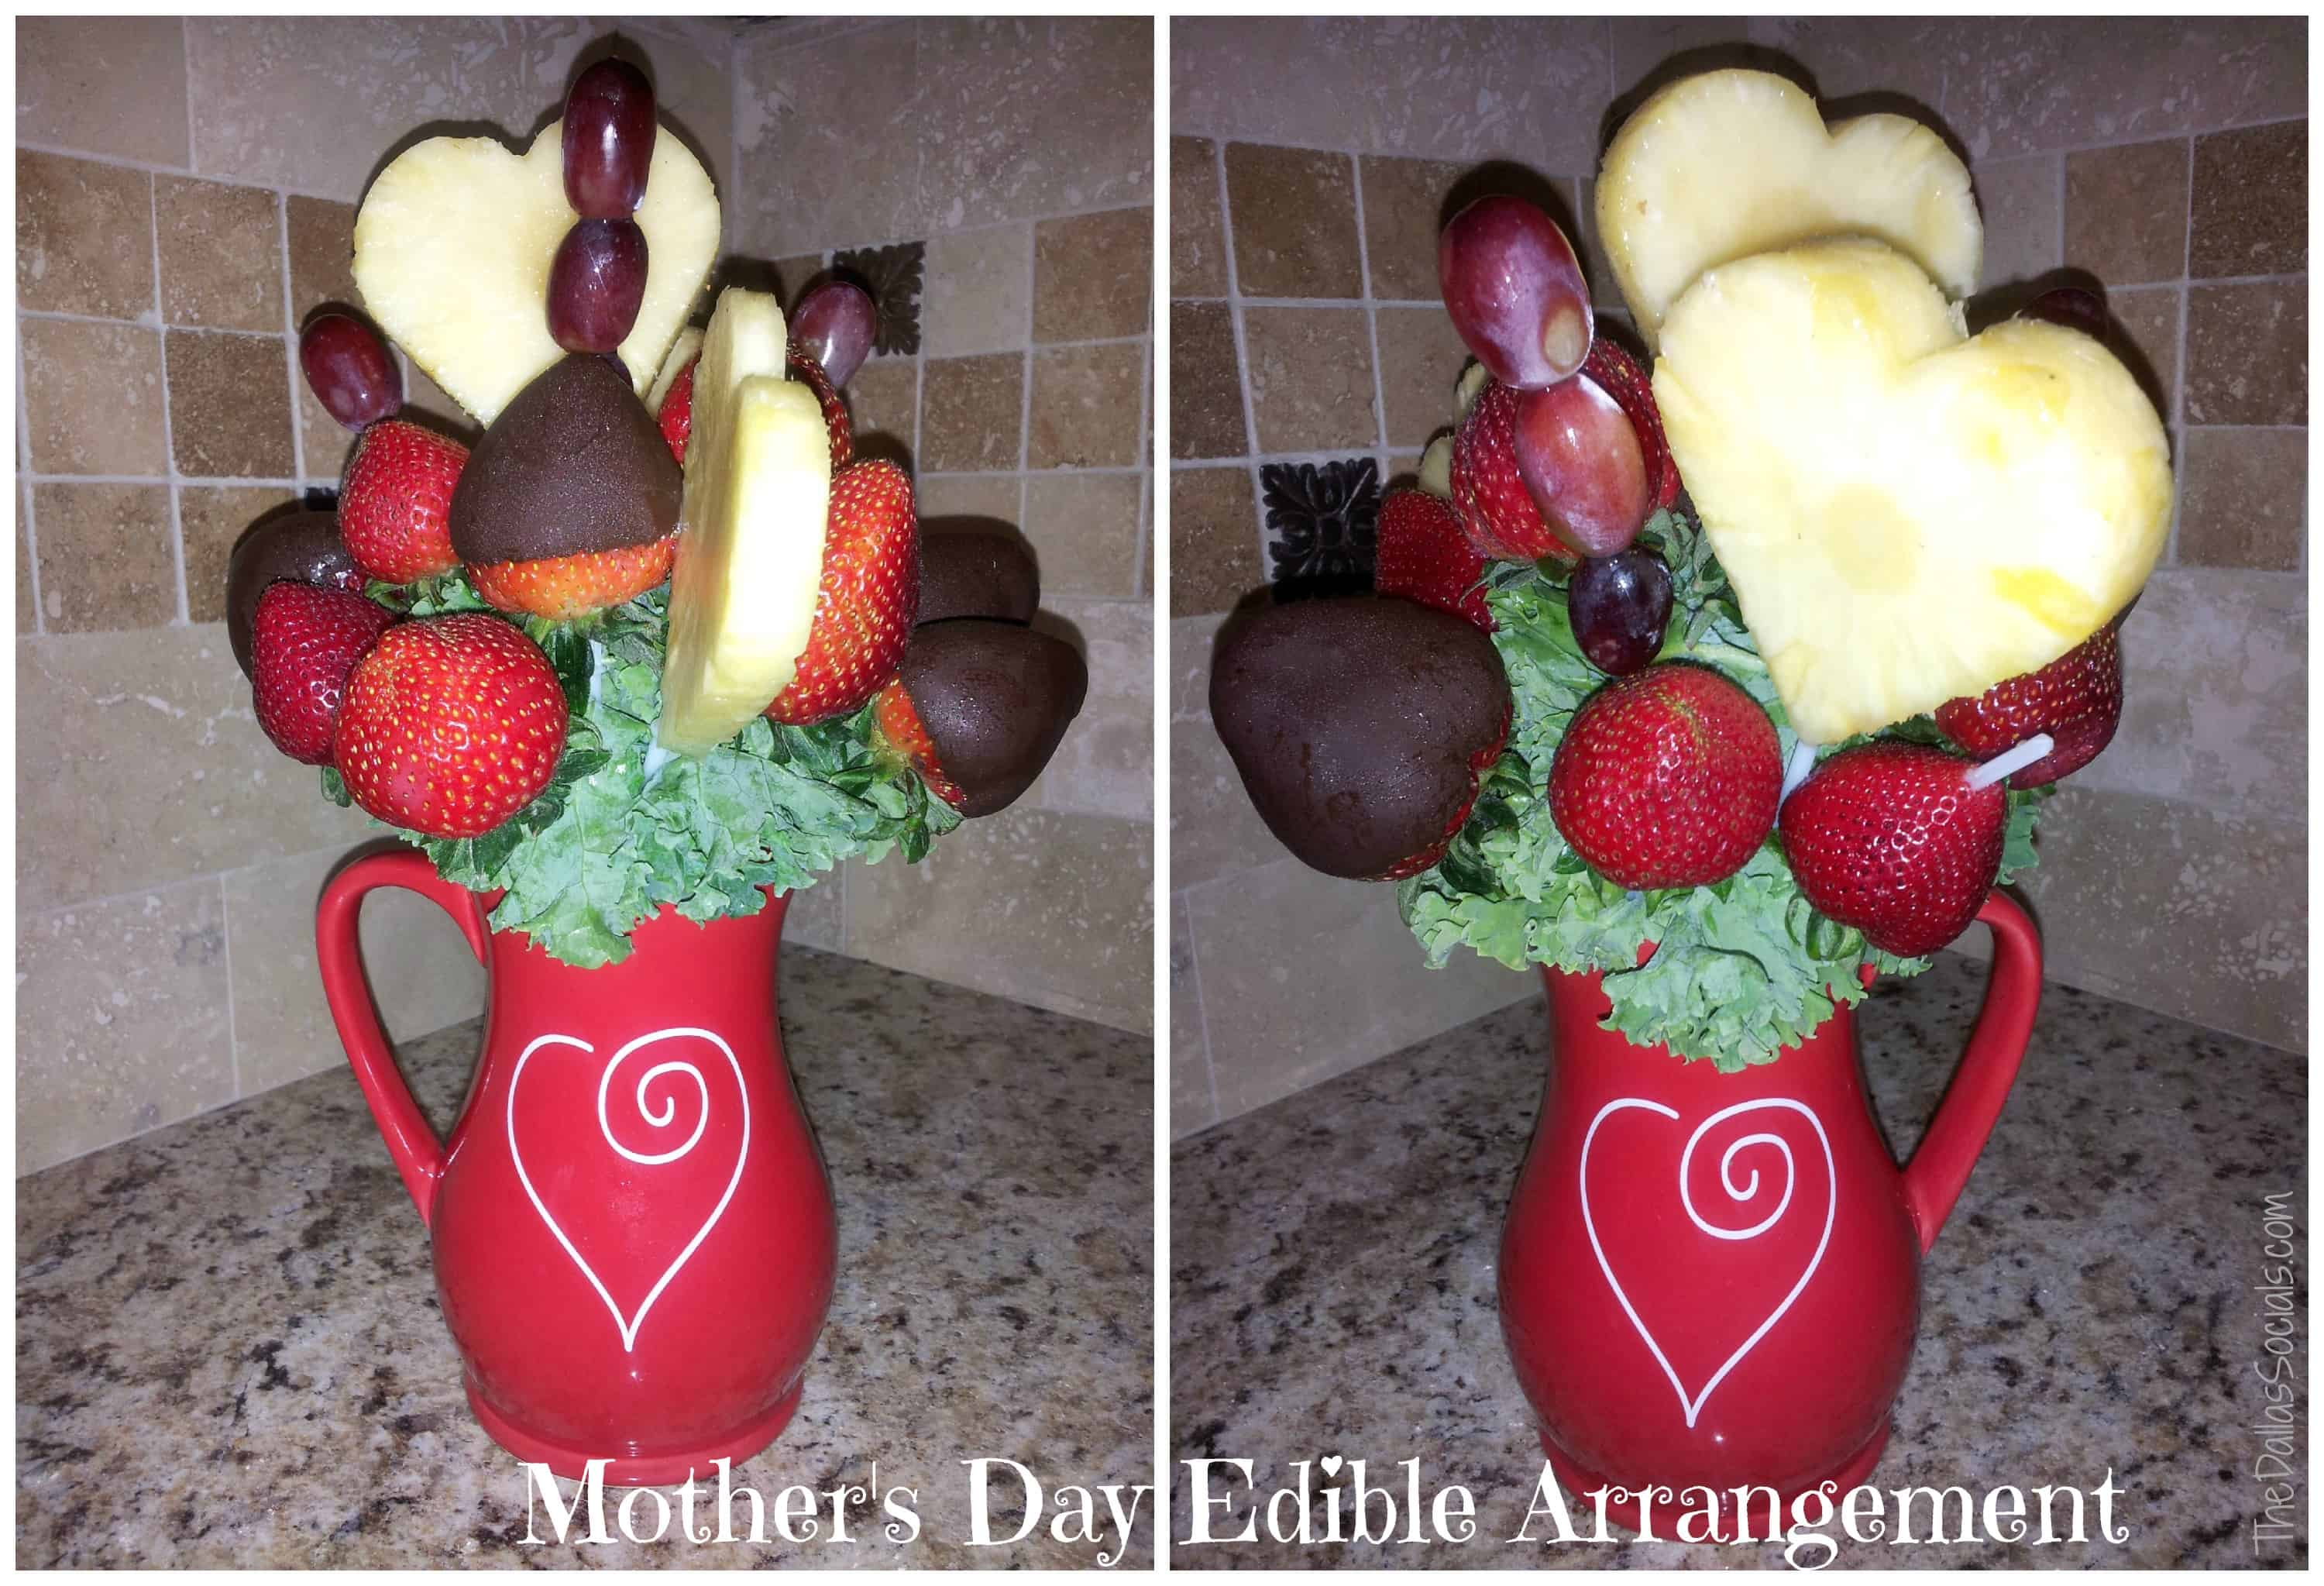 Sweeten Your Mother 39 S Day With An Edible Arrangement